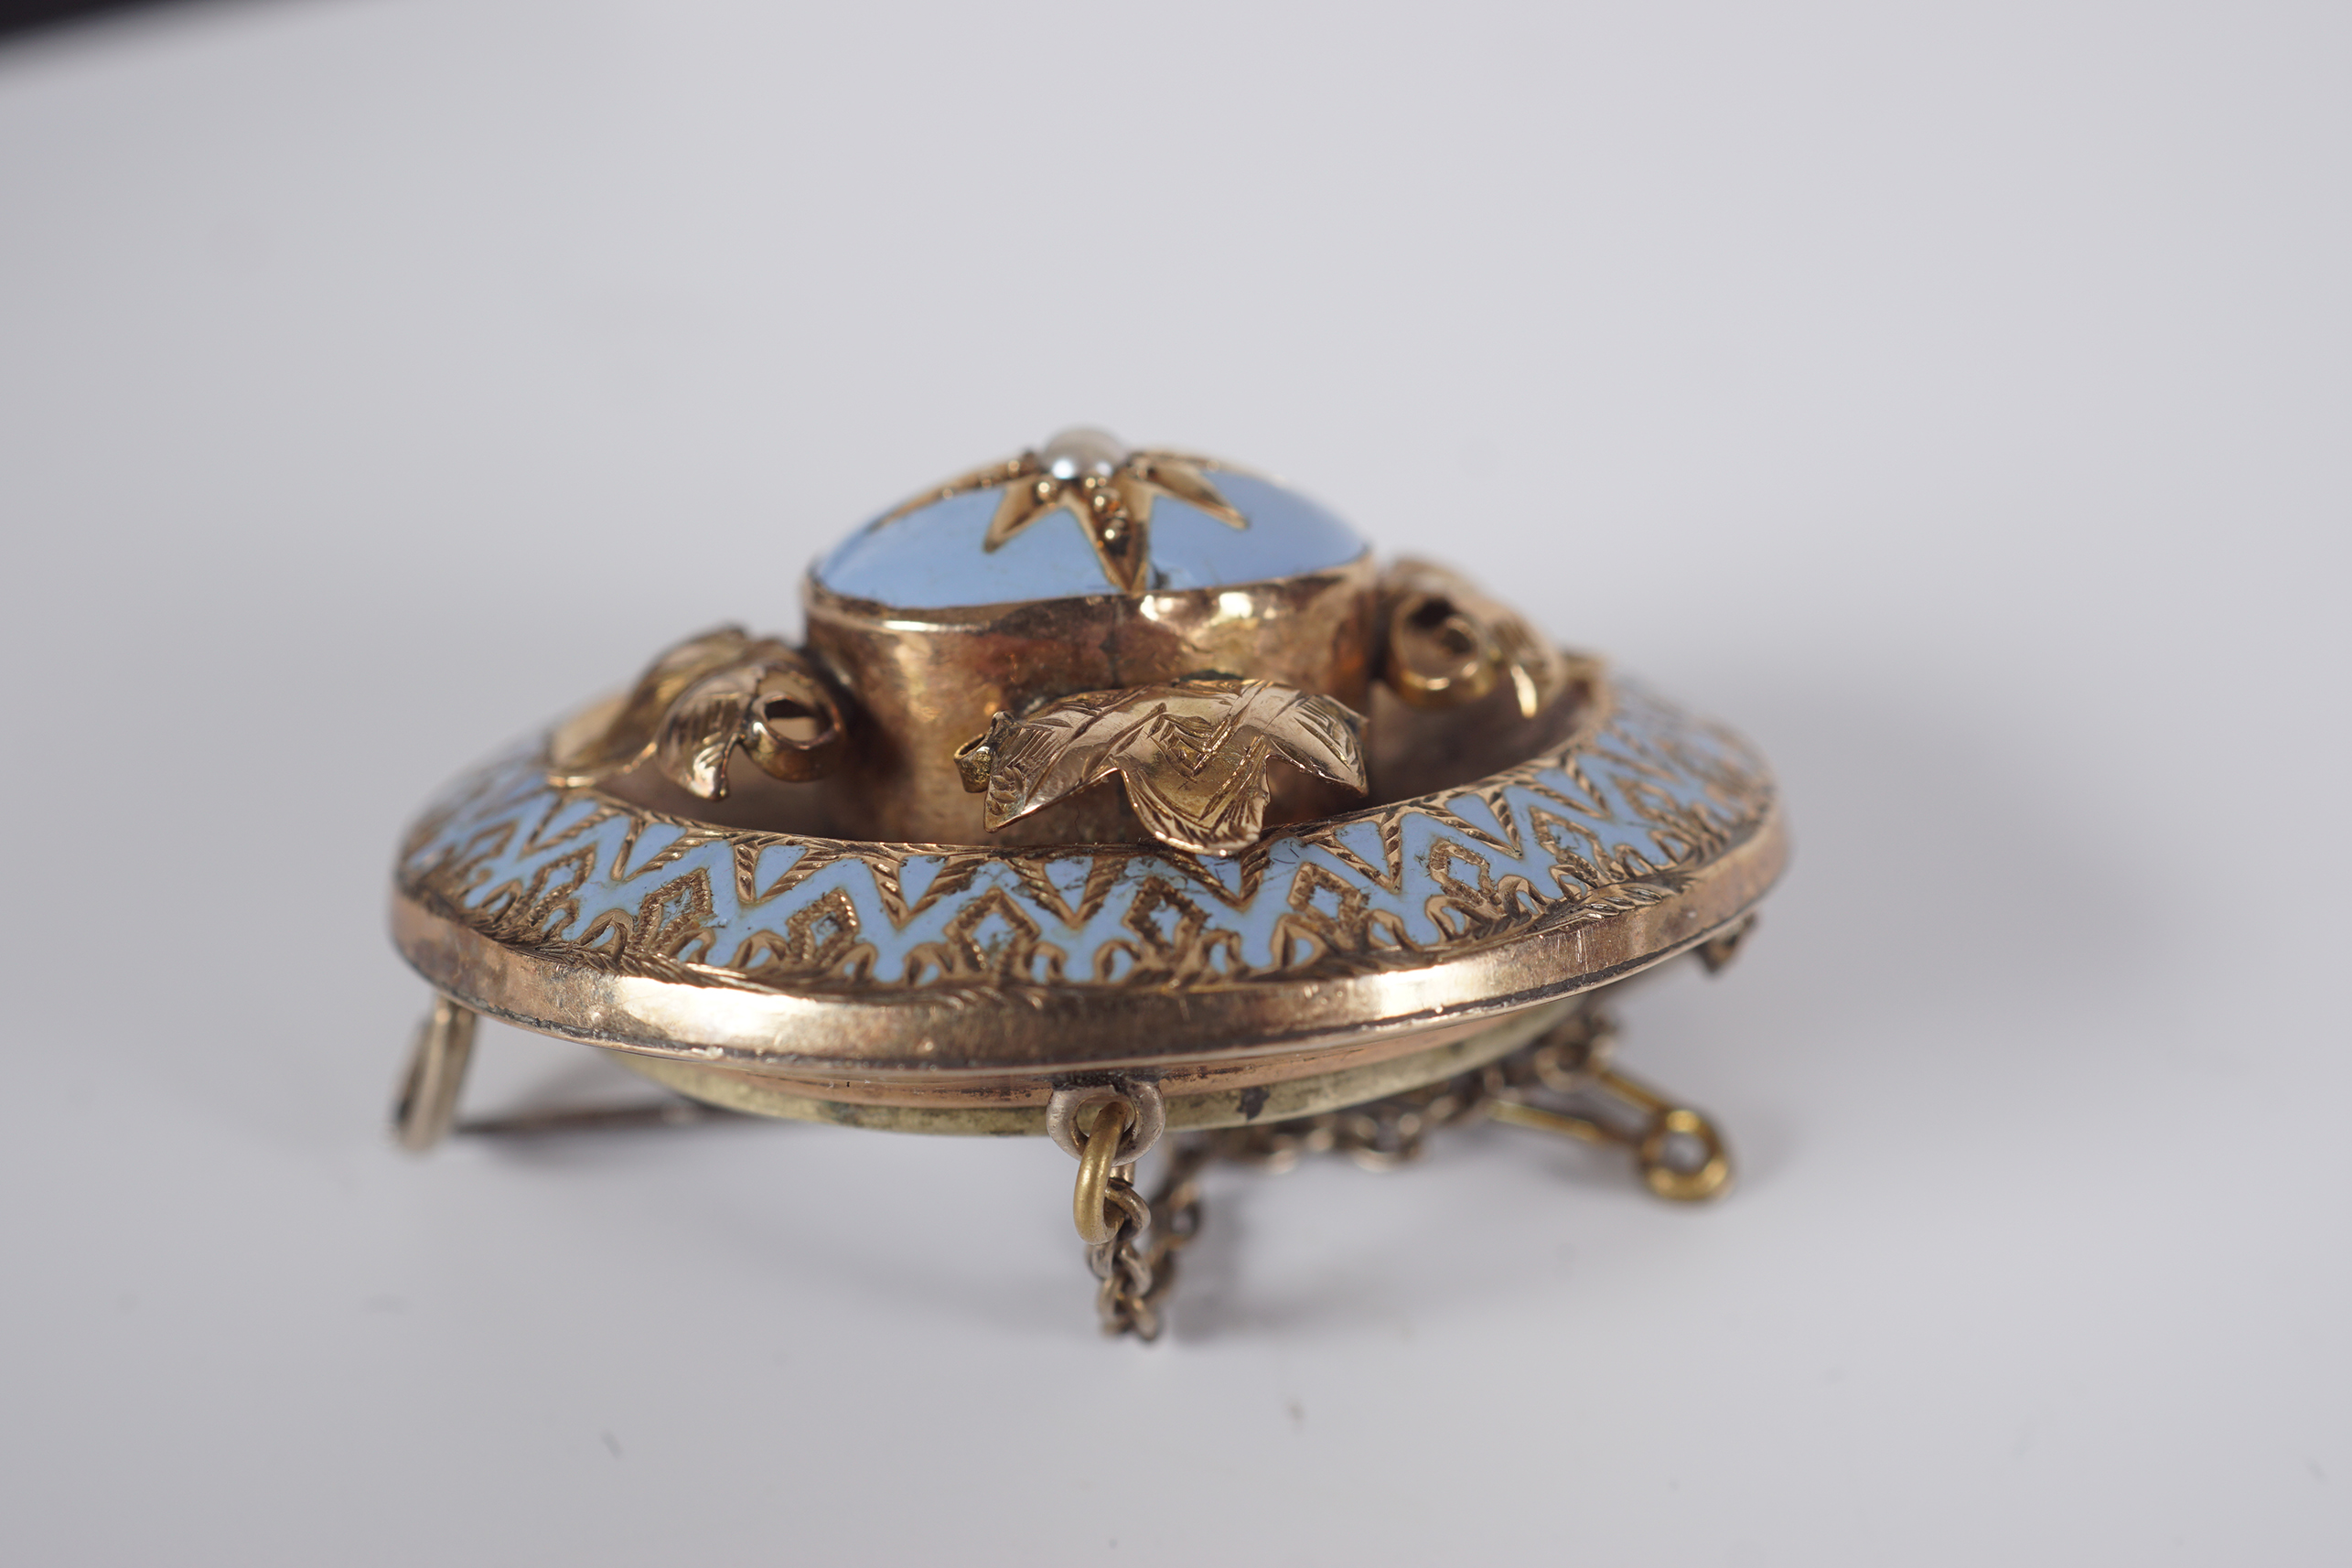 ANTIQUE GOLD AND ENAMEL MOURNING BROOCH - Image 3 of 3